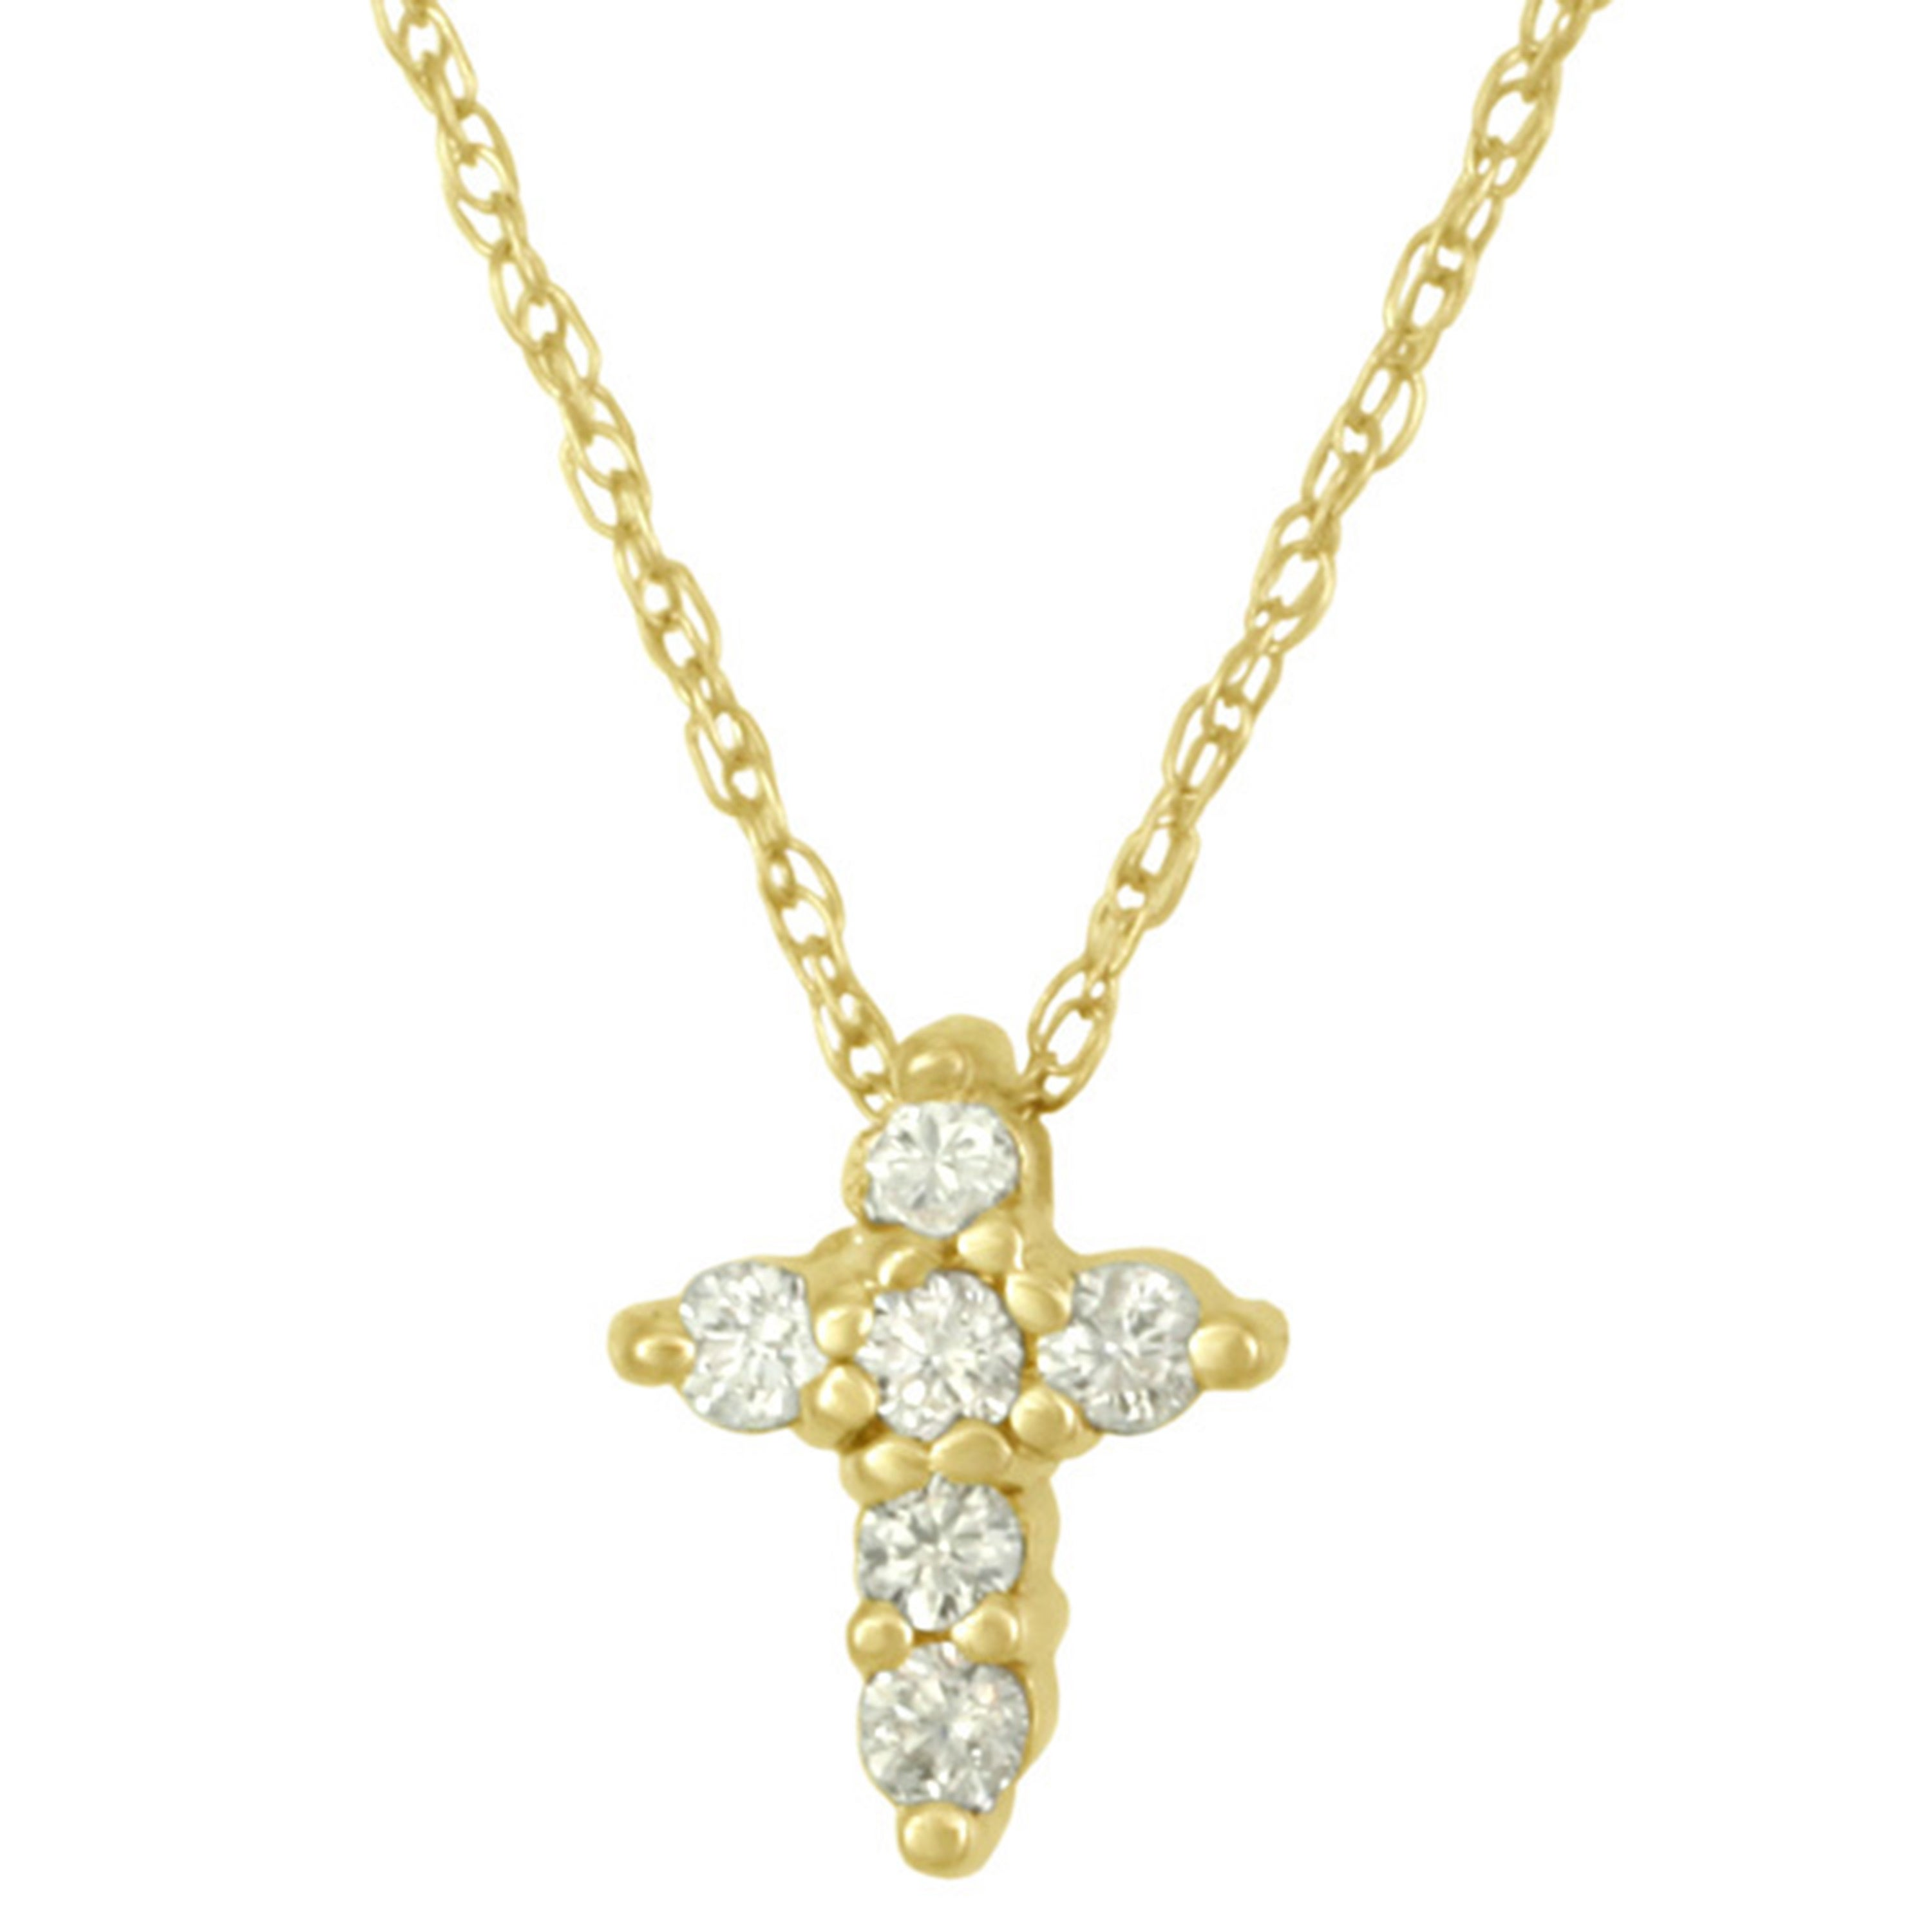 Shop 14k gold diamond cross necklace with round brilliant cut shop 14k gold diamond cross necklace with round brilliant cut diamond accents free shipping today overstock 11551582 aloadofball Image collections